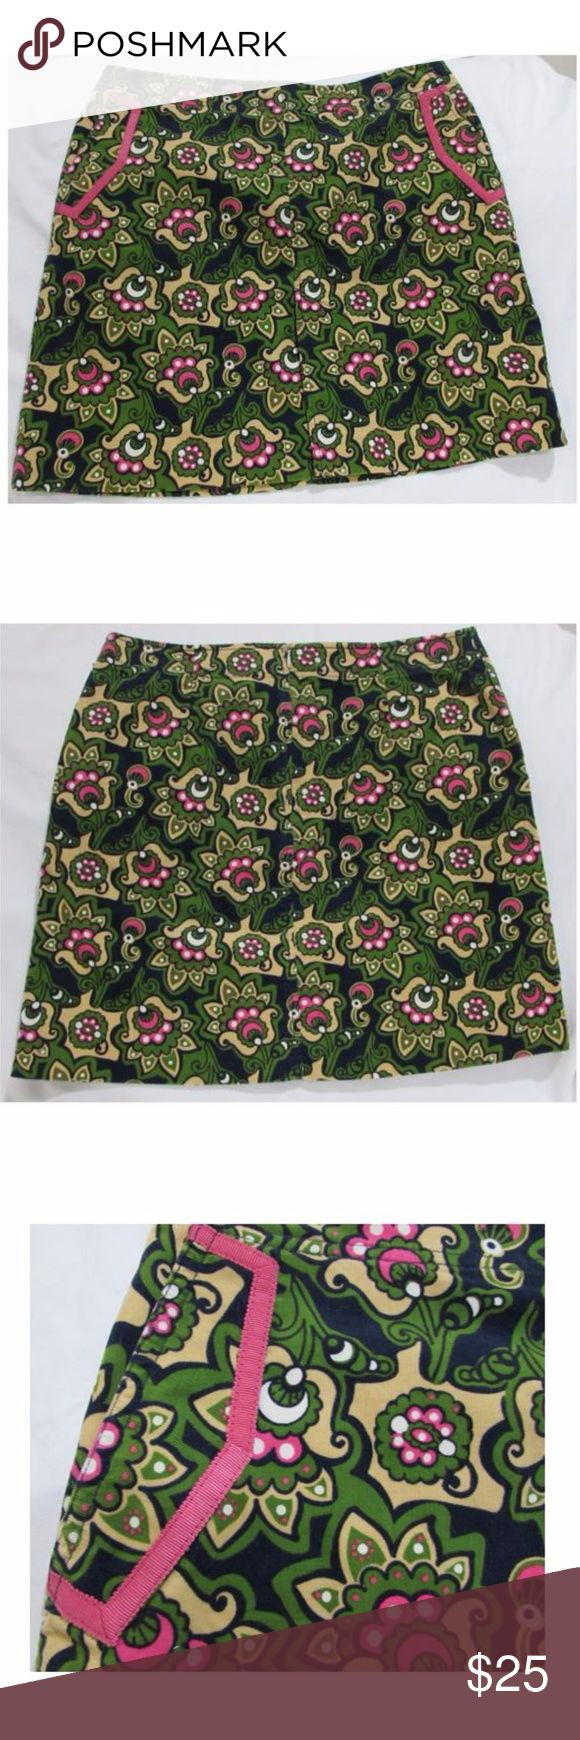 """Lilly Pulitzer Green/Pink Floral Corduroy Skirt This Lilly Pulitzer skirt features a floral print with pink trim at the pockets. It has a slightly A-line cut and secures in the back with a zipper and button. It is made of a light corduroy material (not too thick) that is slightly stretchy, but the waistband does not give very much. There is a pleat at the front of the skirt.   Excellent condition.  Size: 4 Across, at waist: ~15"""" Across, at bottom hem:~ 22"""" Length, measured down middle of…"""